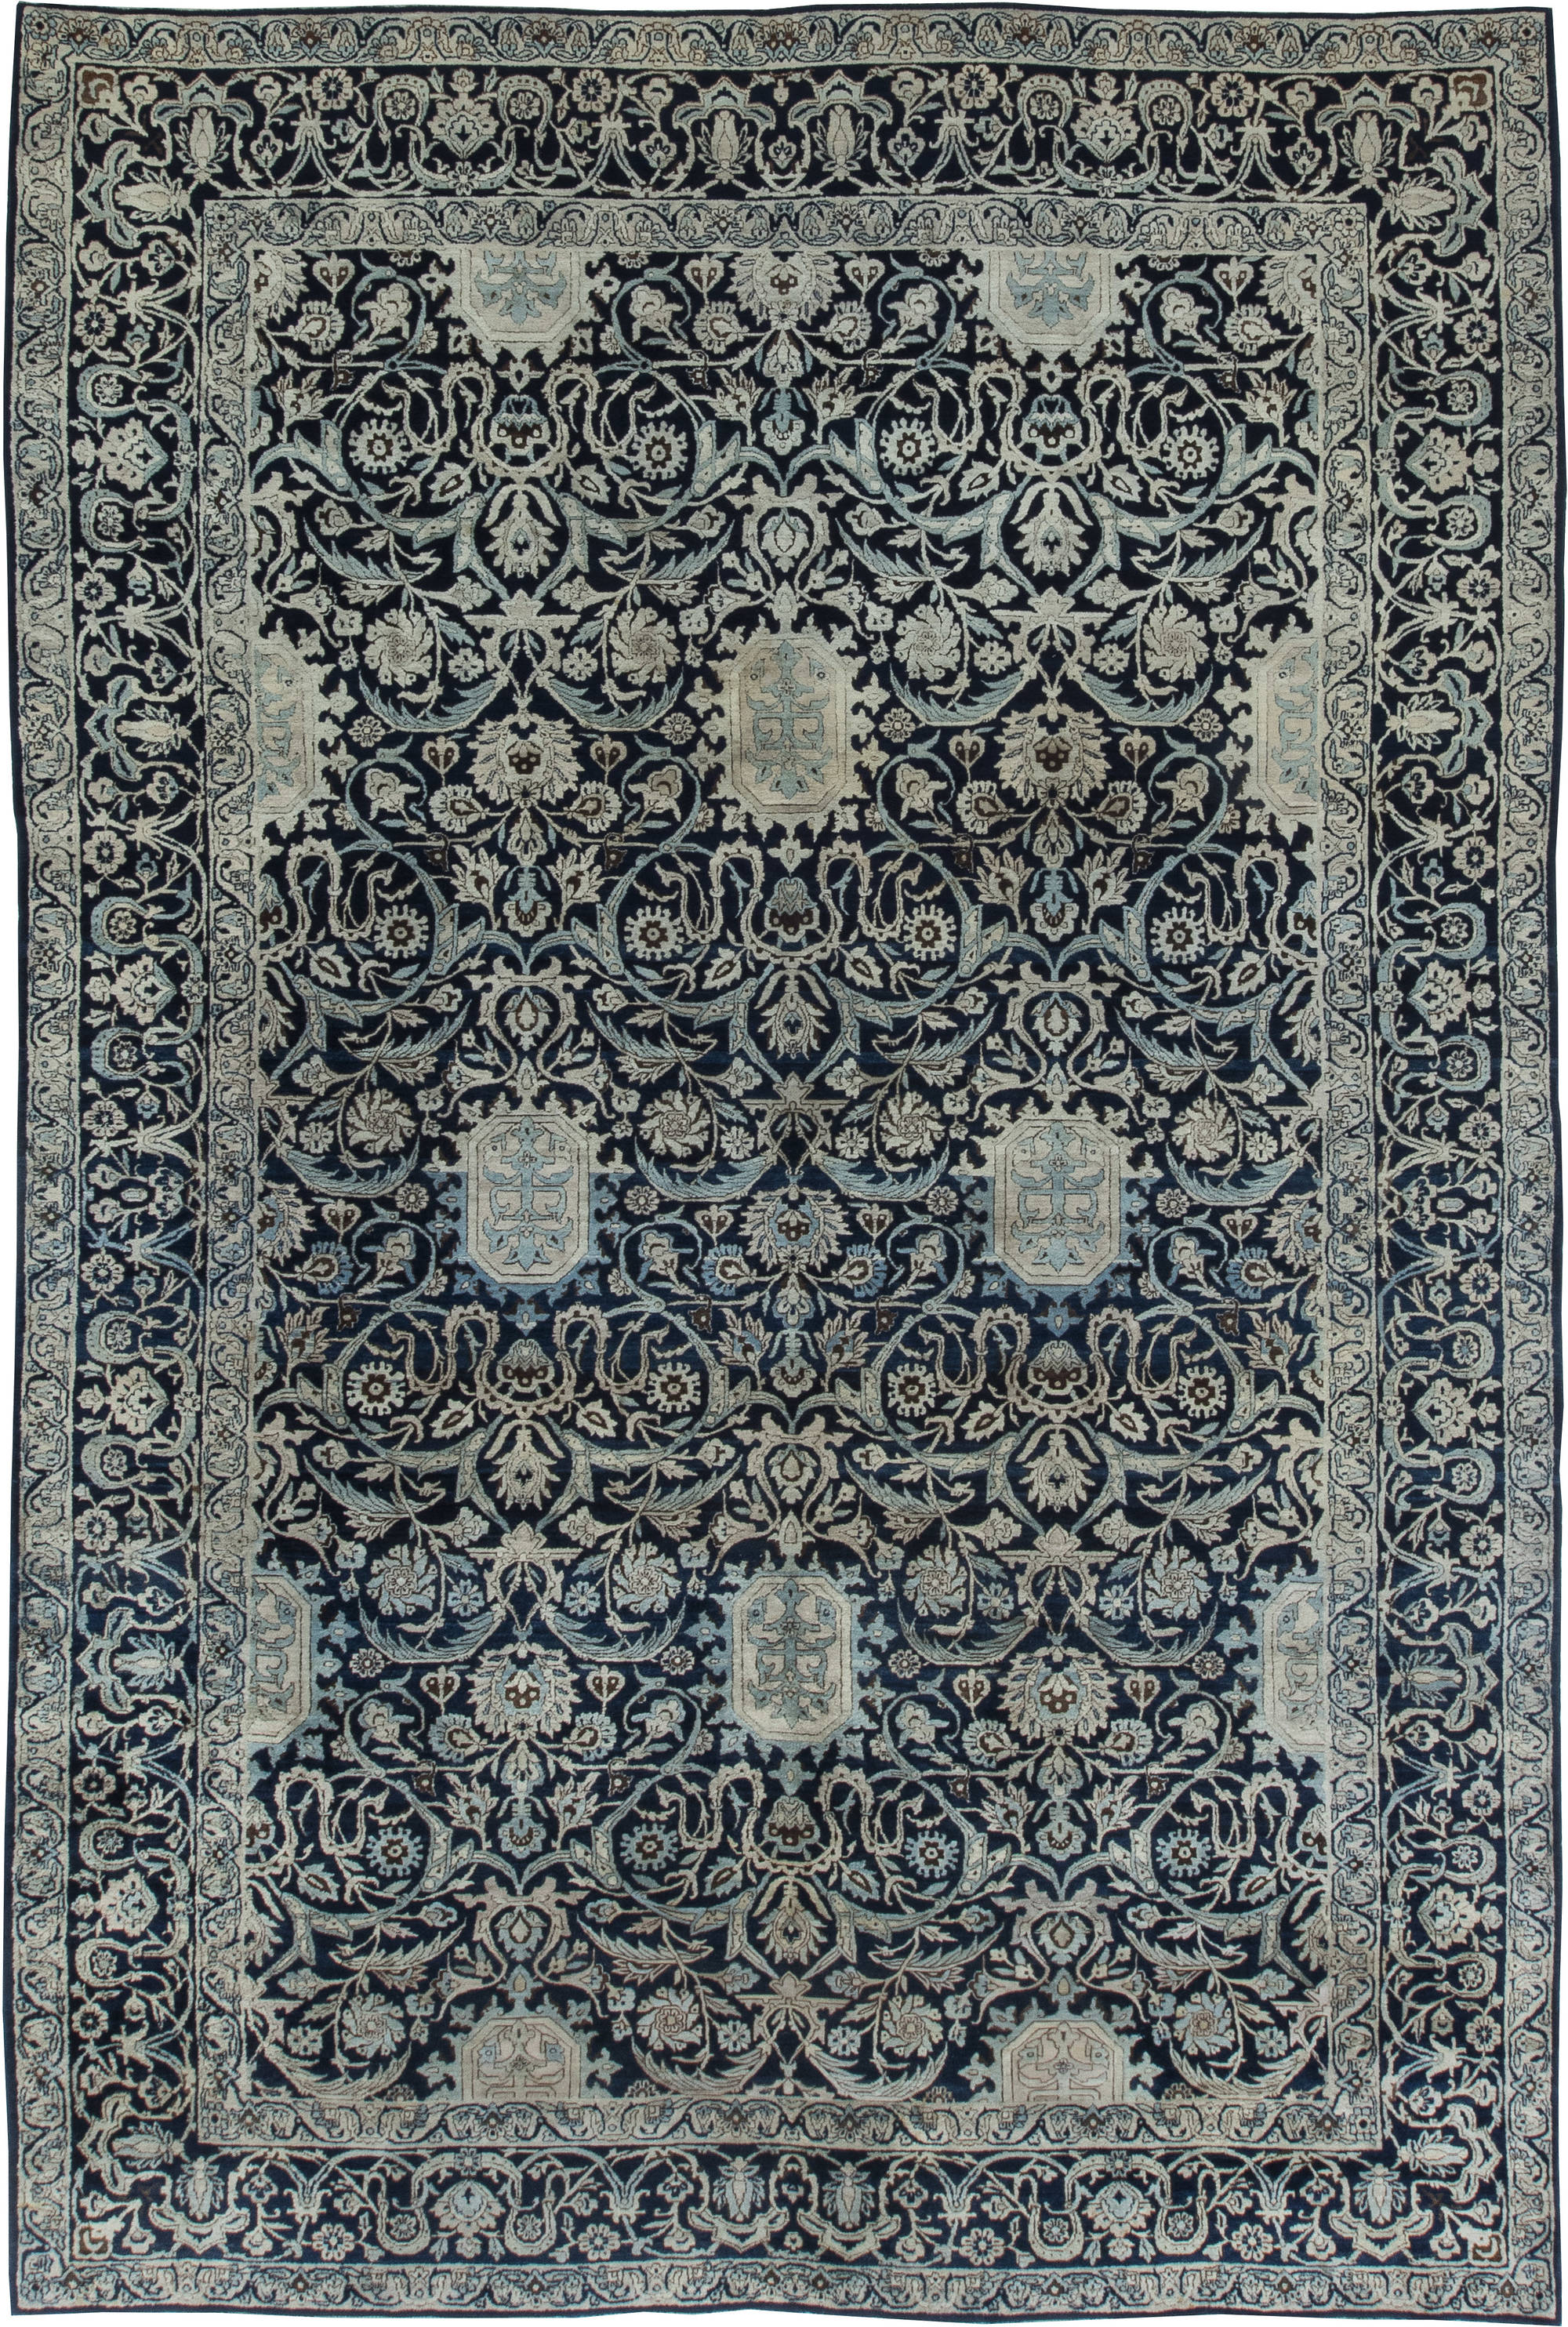 Antique persian rugs antique oriental rugs persian for Cheap persian rugs nyc